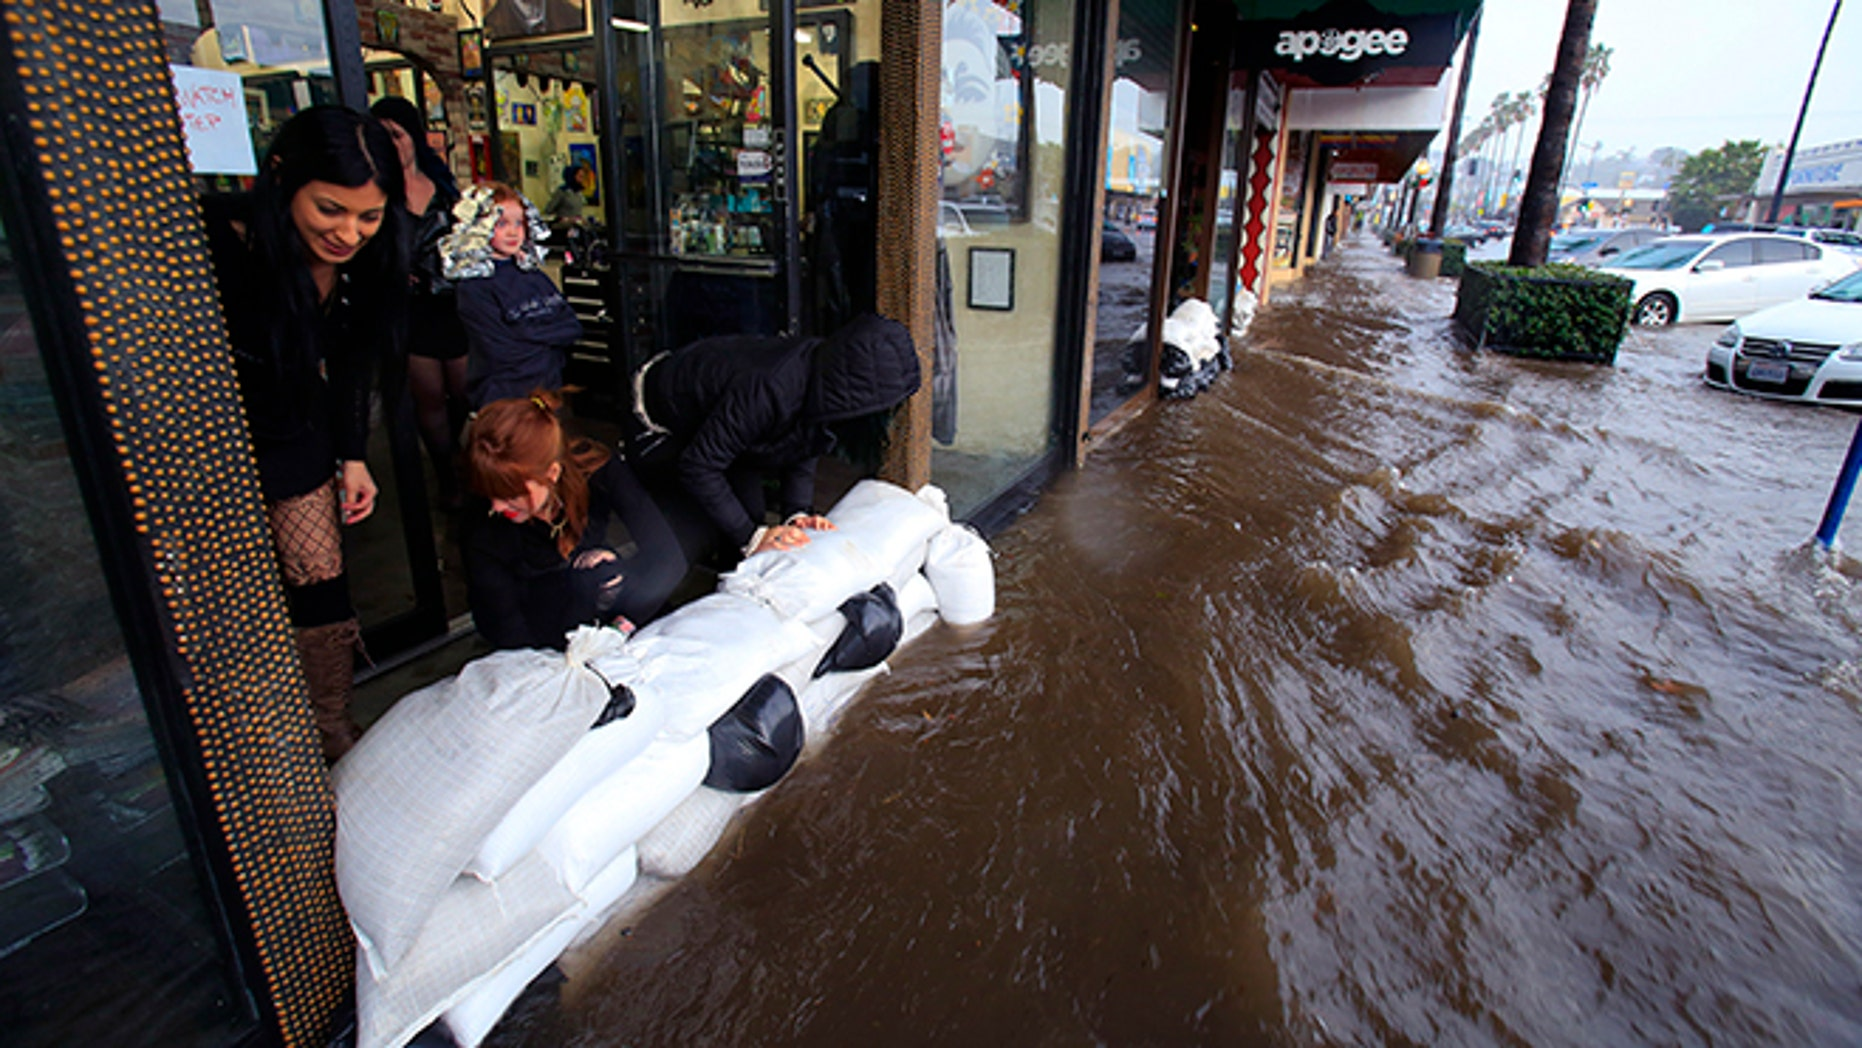 From left, Amanda Bourbois, Mary Spear and Jordan Brown place sand bags in front of the Electric Chair salon Wednesday, Jan. 6, 2016, in San Diego. El Nino storms lined up in the Pacific, promising to drench parts of the West for more than two weeks and increasing fears of mudslides and flash floods in regions stripped bare by wildfires. (Nelvin C. Cepeda/The San Diego Union-Tribune via AP)  NO SALES; MANDATORY CREDIT